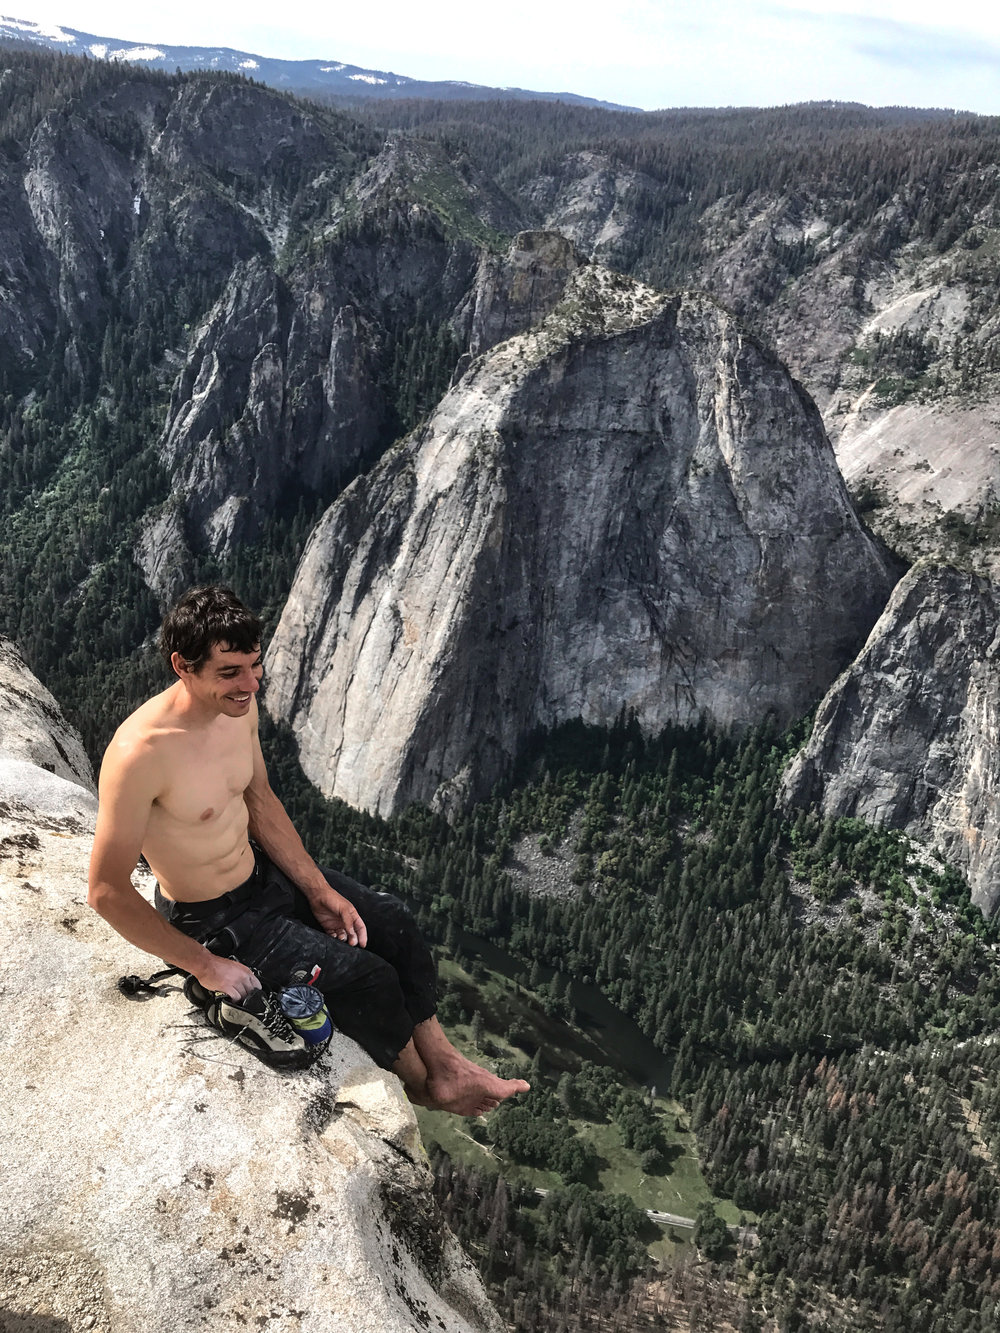 FreeSolo_Photographs © 2018 National Geographic Partners, LLC. All rights reserved.05.jpg